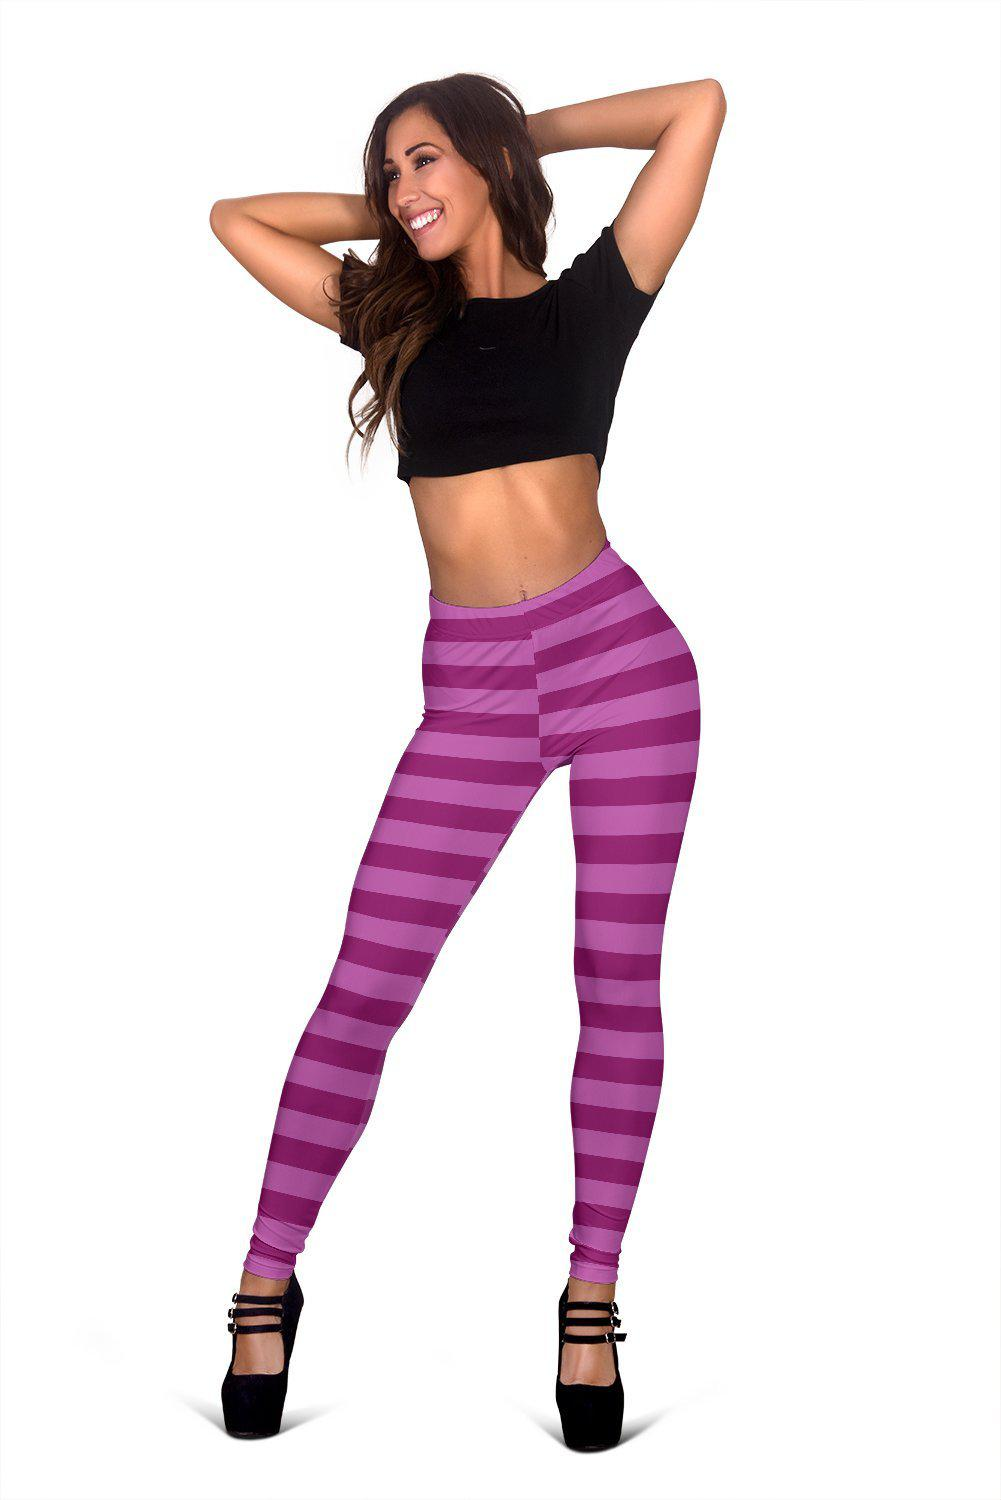 Cheshire Cat, All Over Print Leggings